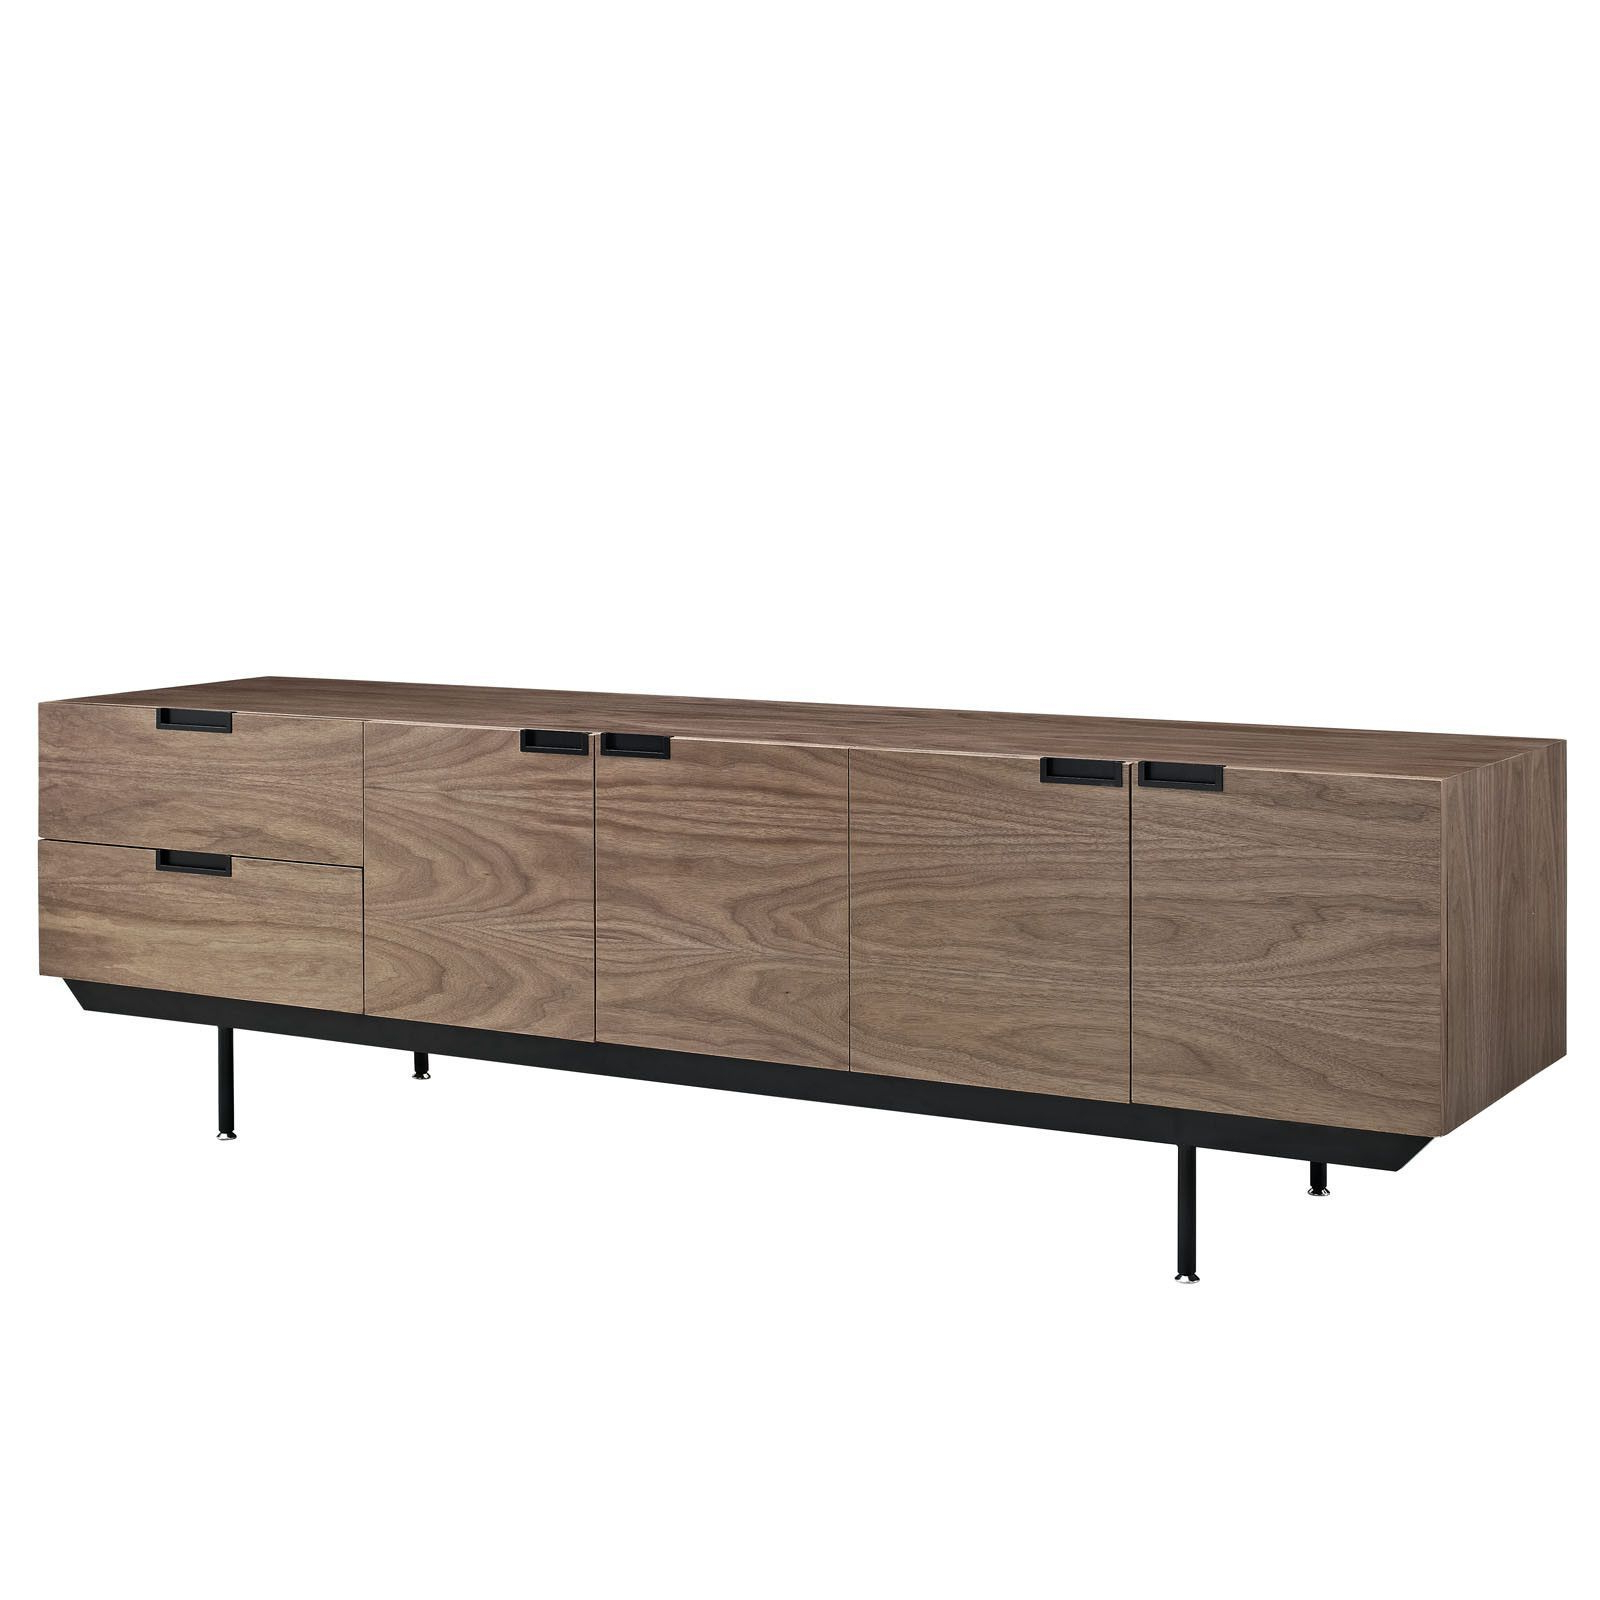 Herald Sideboard In 2019 | Products | Modern Sideboard, Tv Within Dovray Sideboards (View 7 of 20)